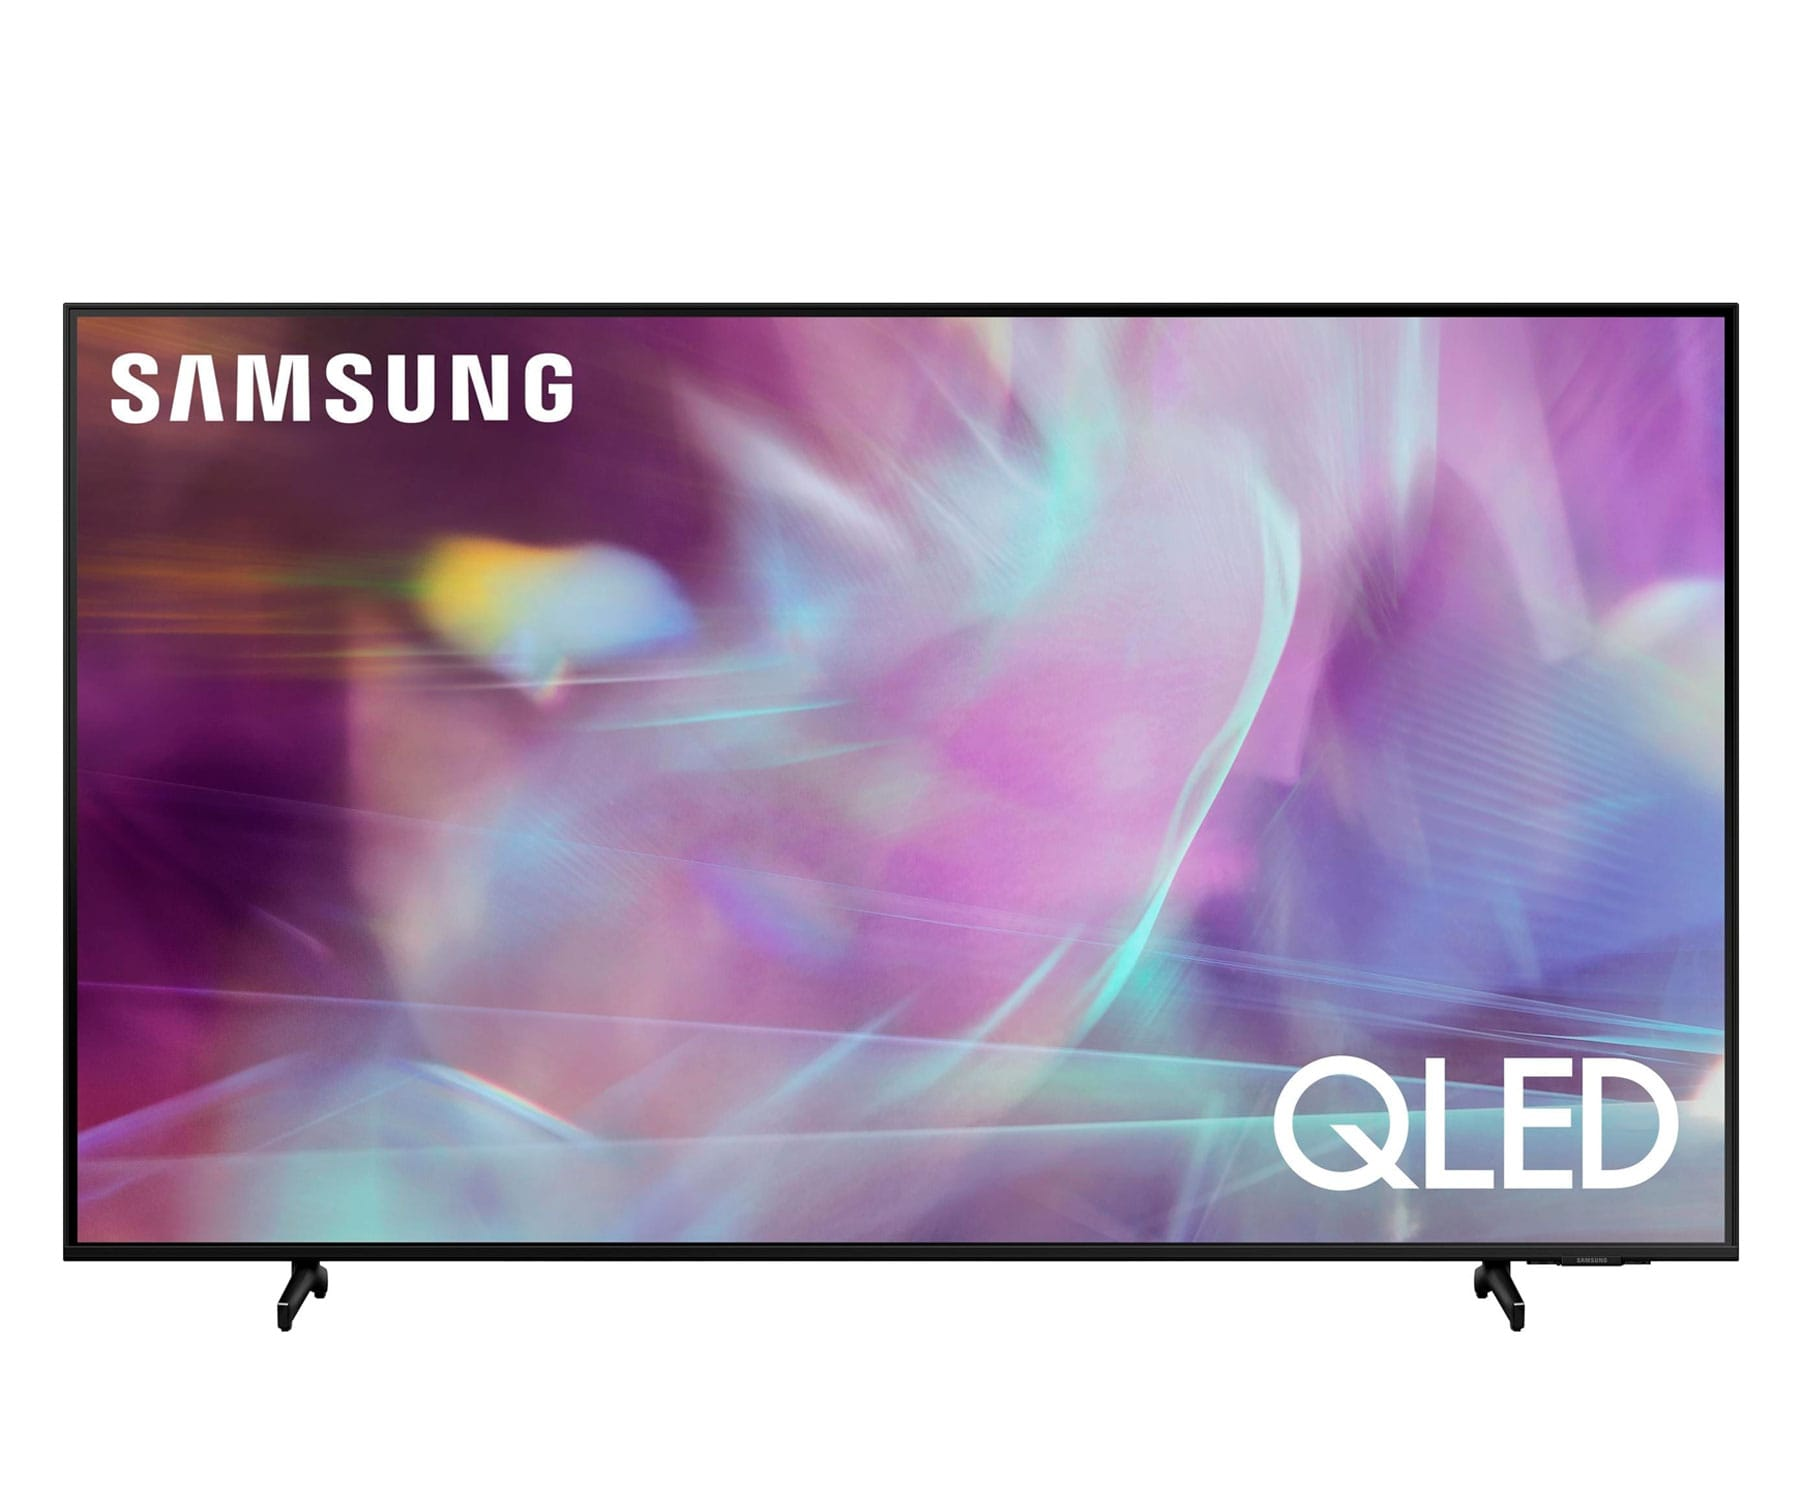 SAMSUNG QE65Q60AAUXXC NEGRO TELEVISOR 65'' QLED 4K SMART TV WIFI BLUETOOTH AMBIENT MODE